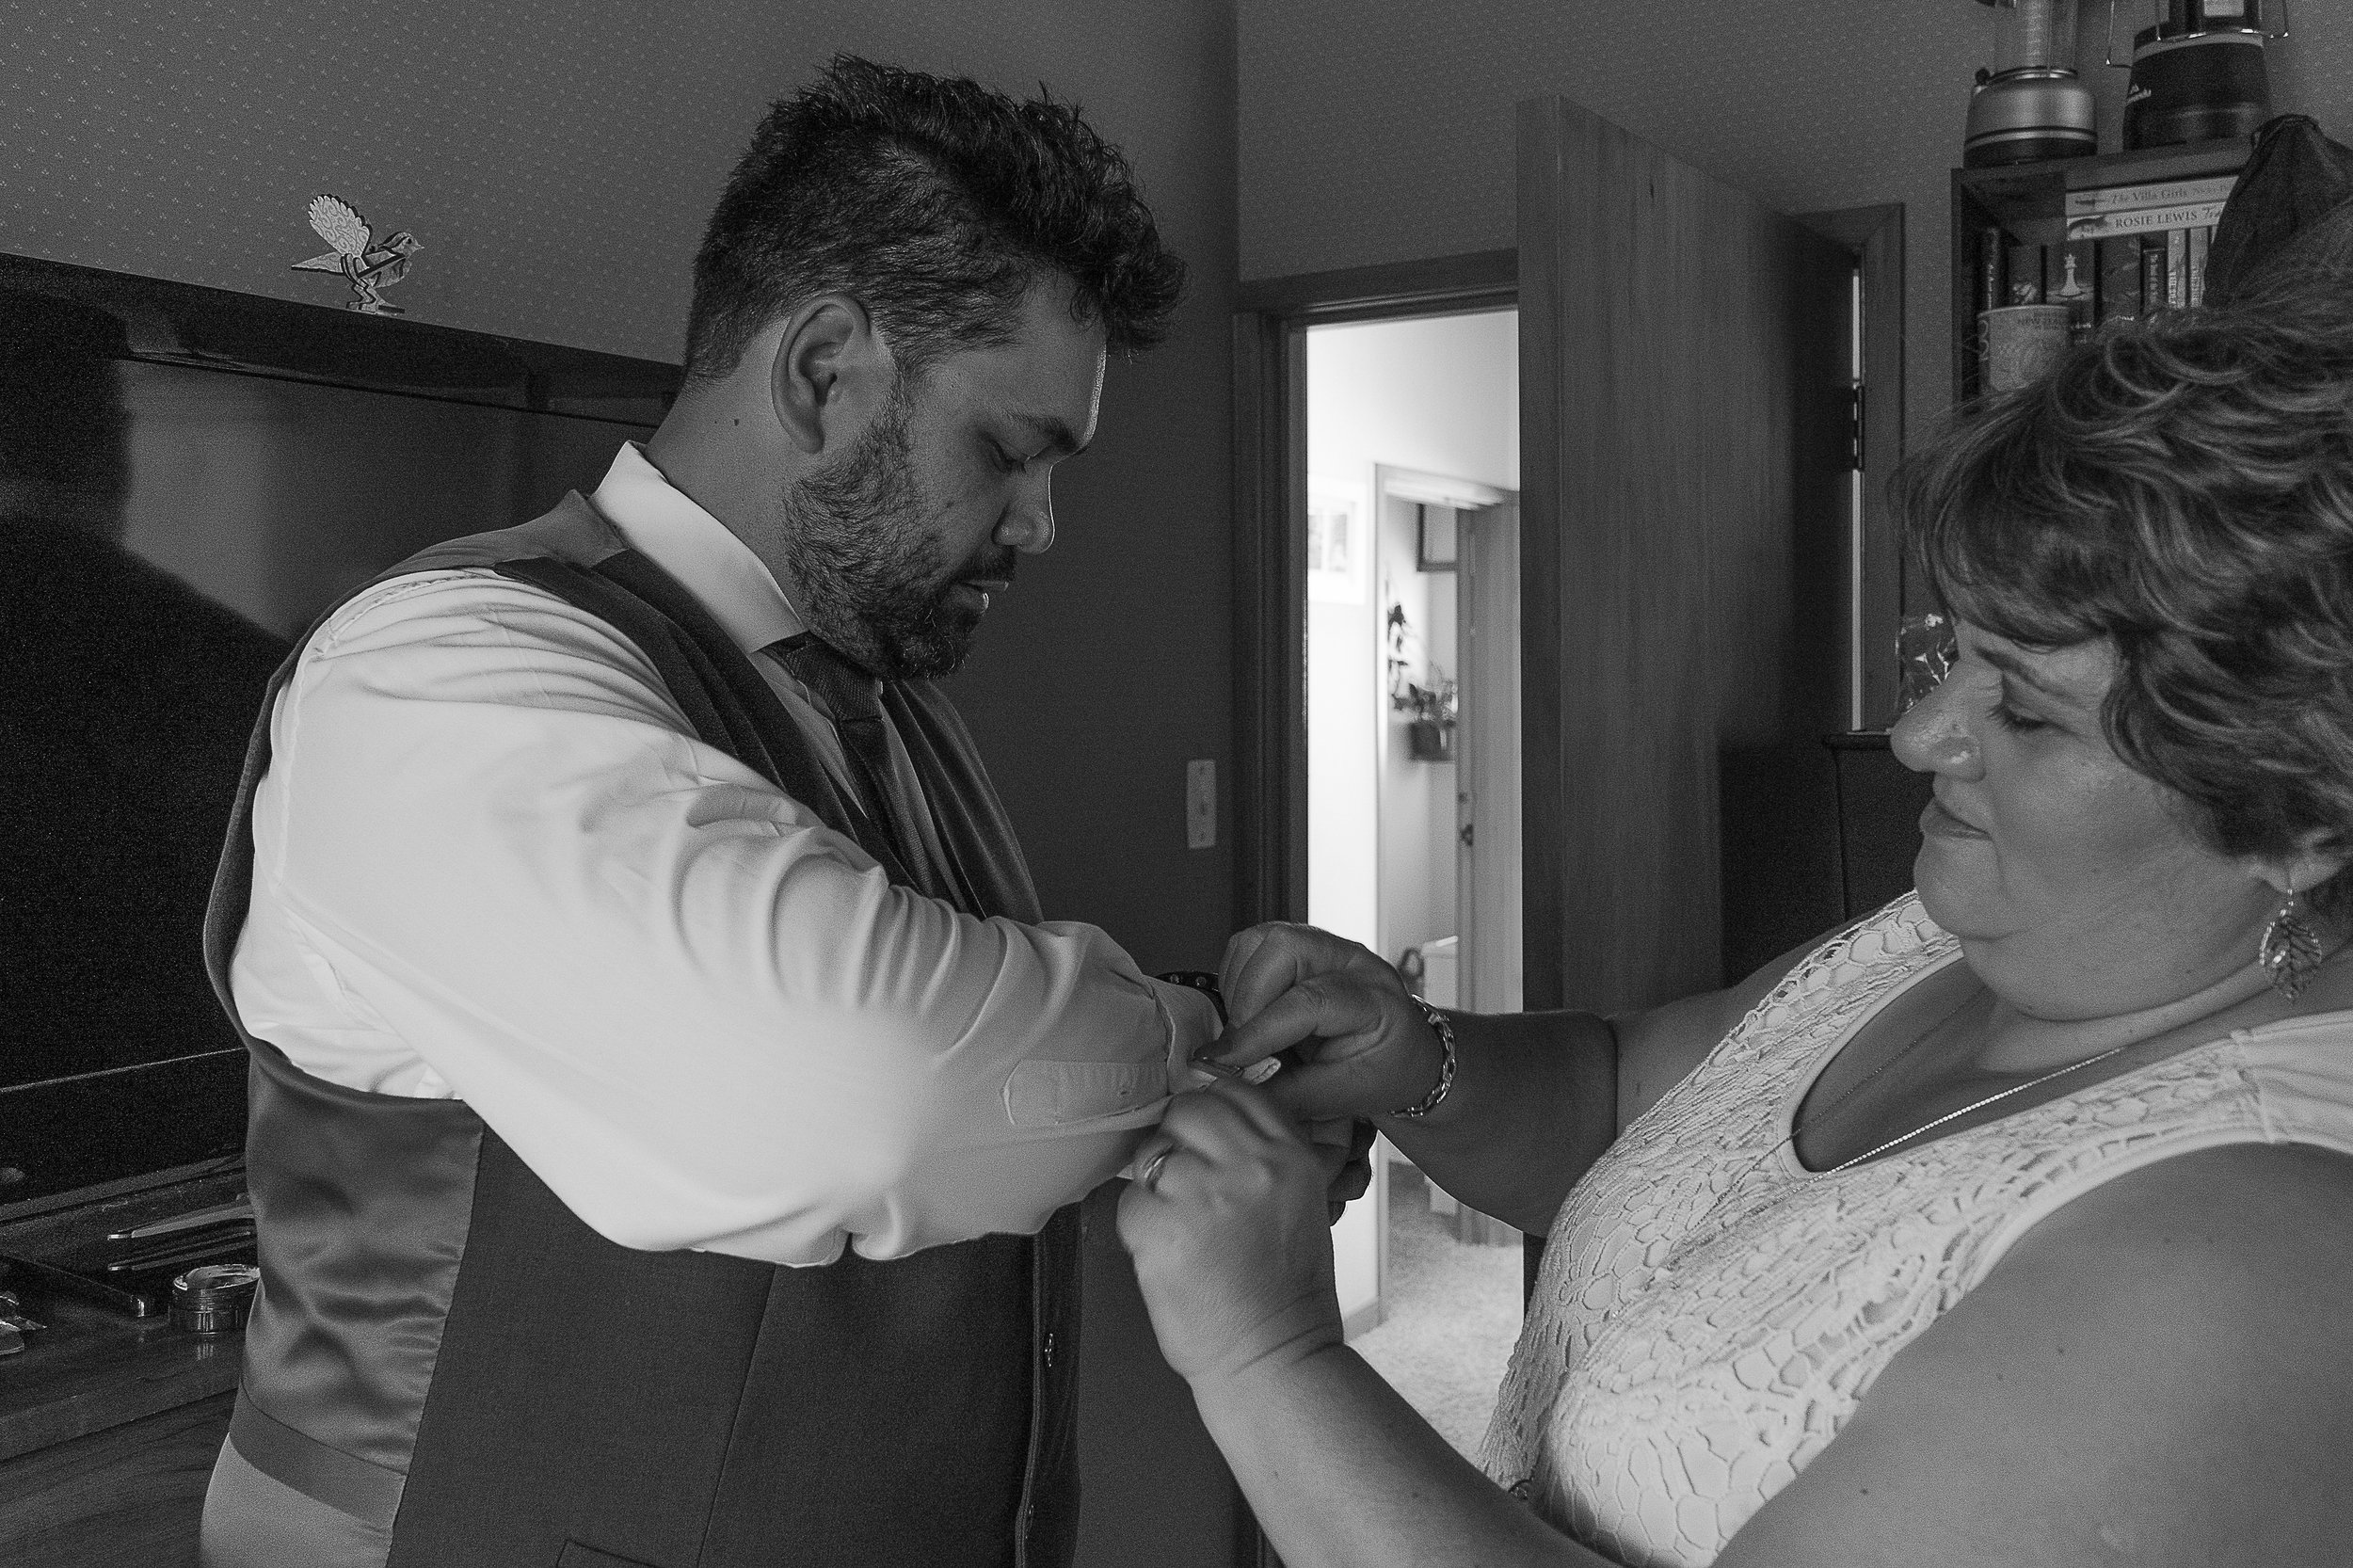 grooms mother helping him do up shirt on wedding day